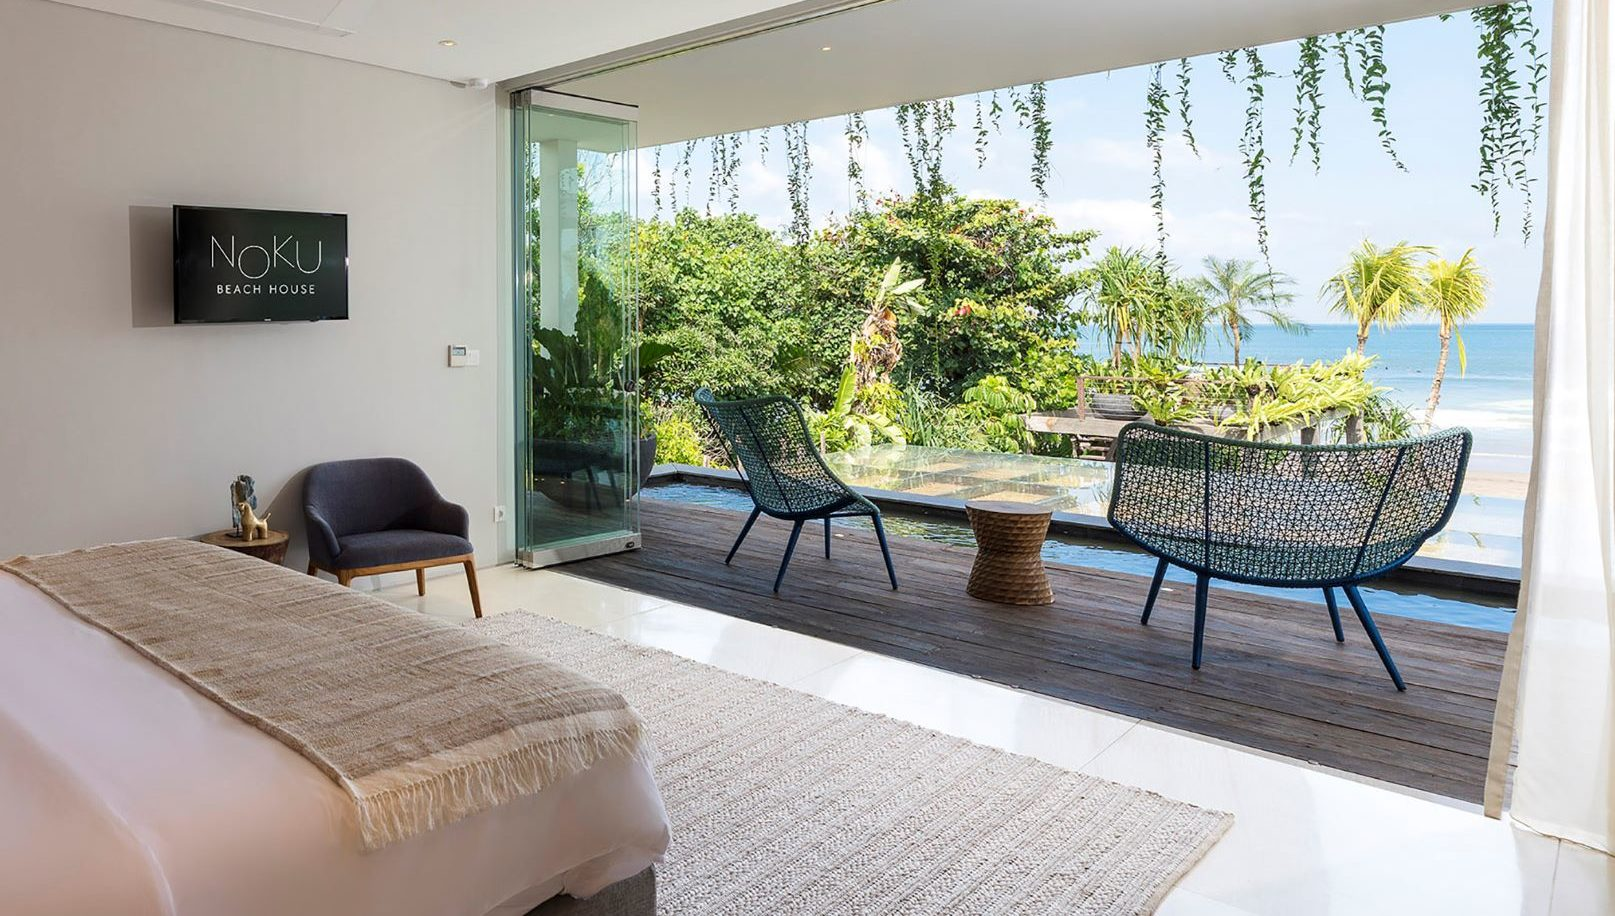 Noku-Beach-House-Marvelous-view-from-bedroom